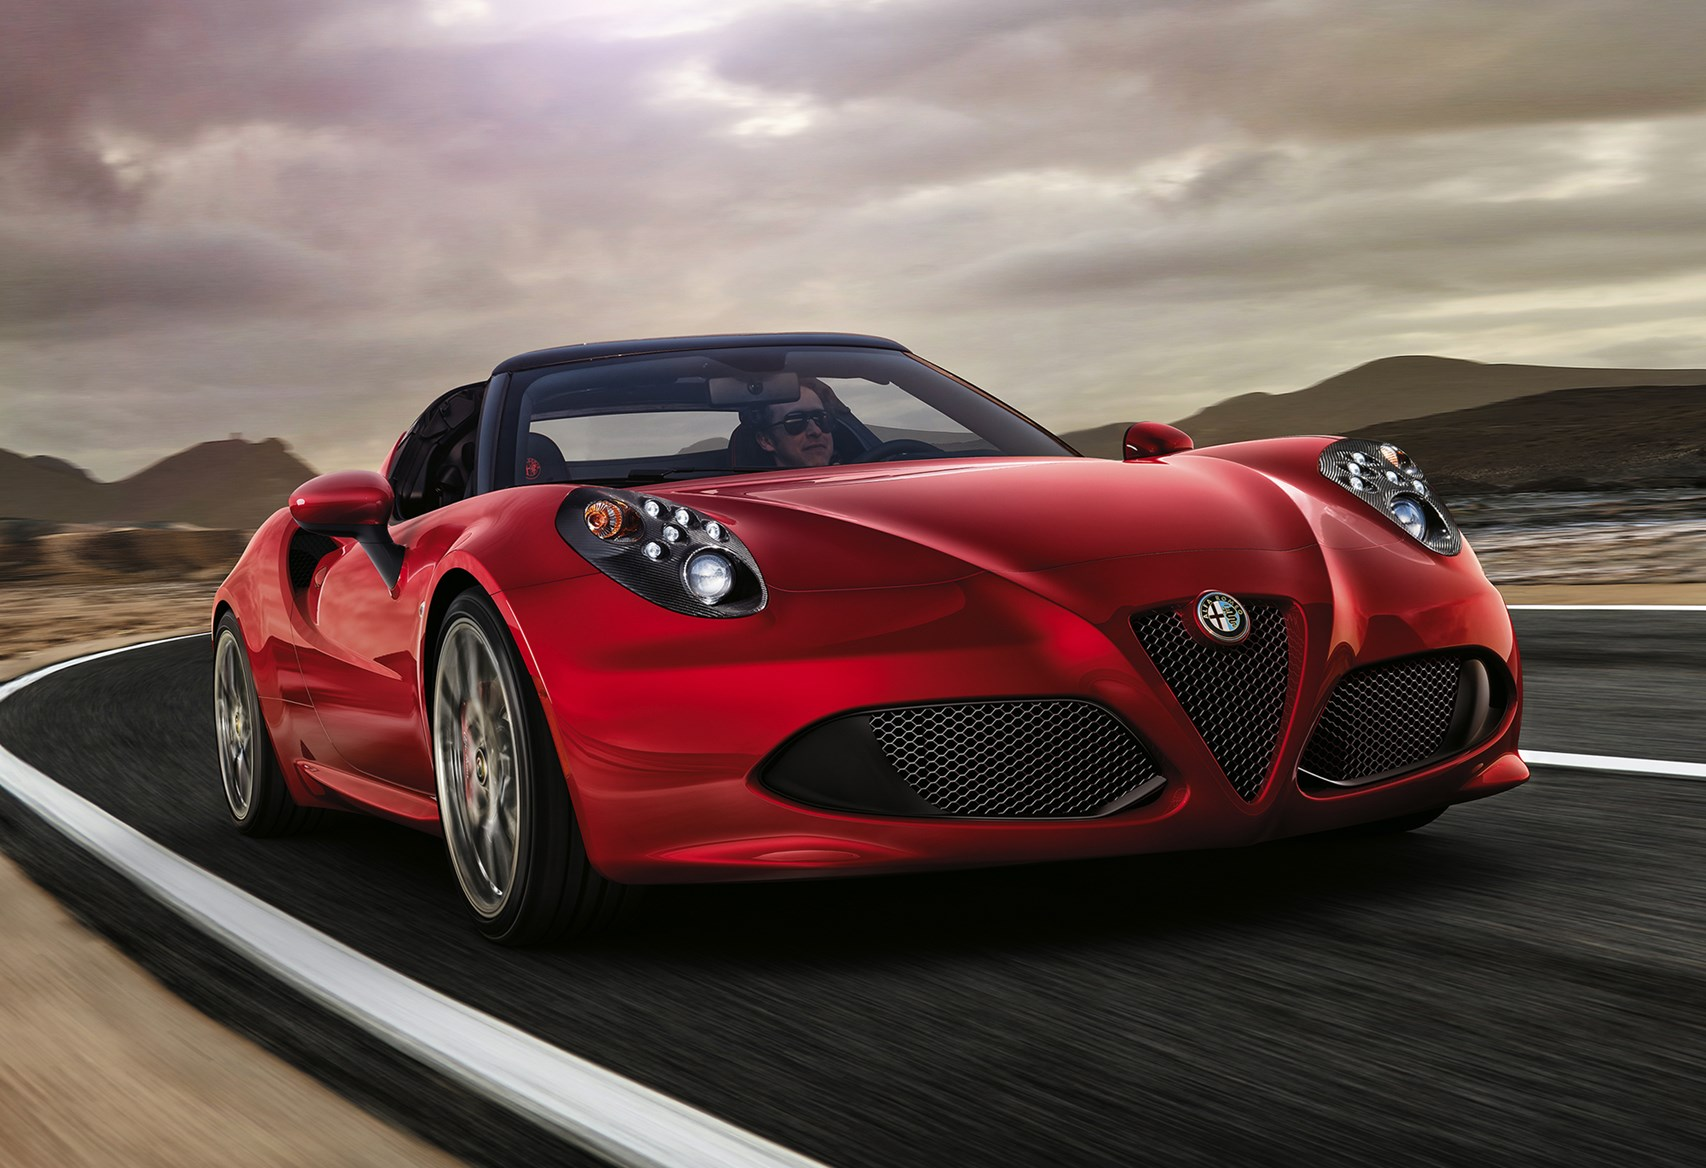 alfa romeo 4c spider review 2015 parkers. Black Bedroom Furniture Sets. Home Design Ideas